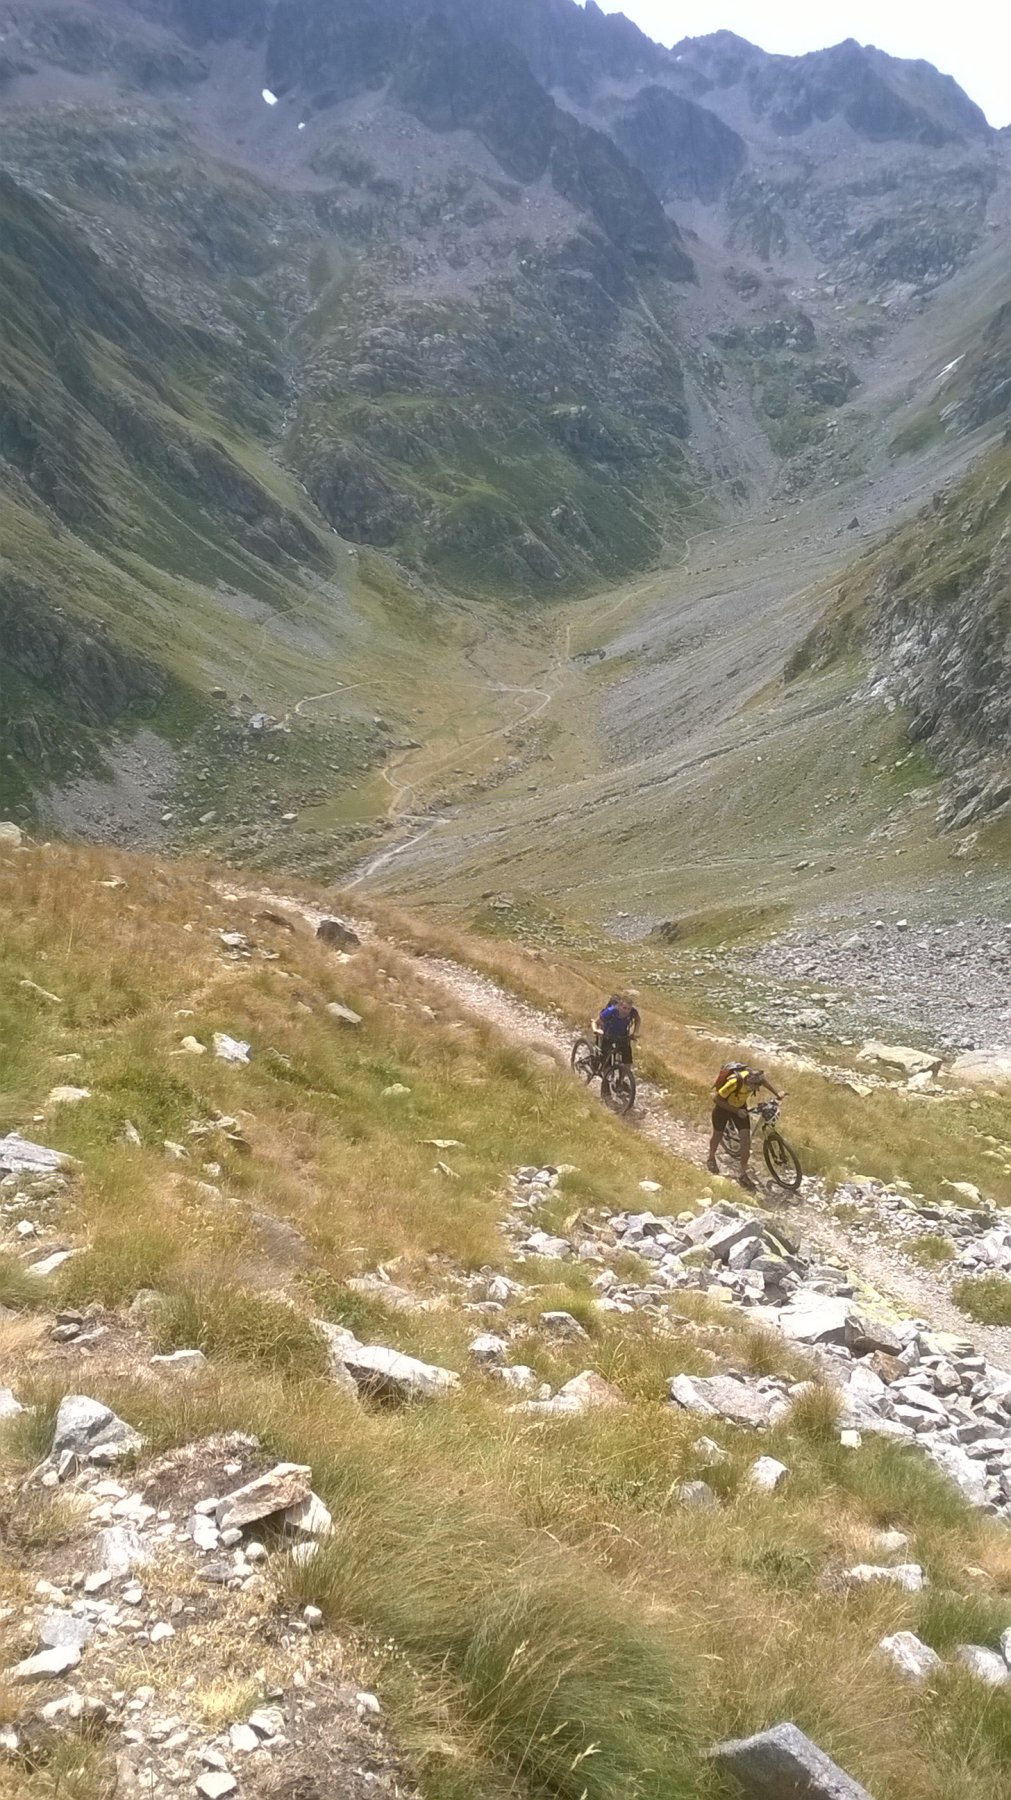 Spintage verso il colle